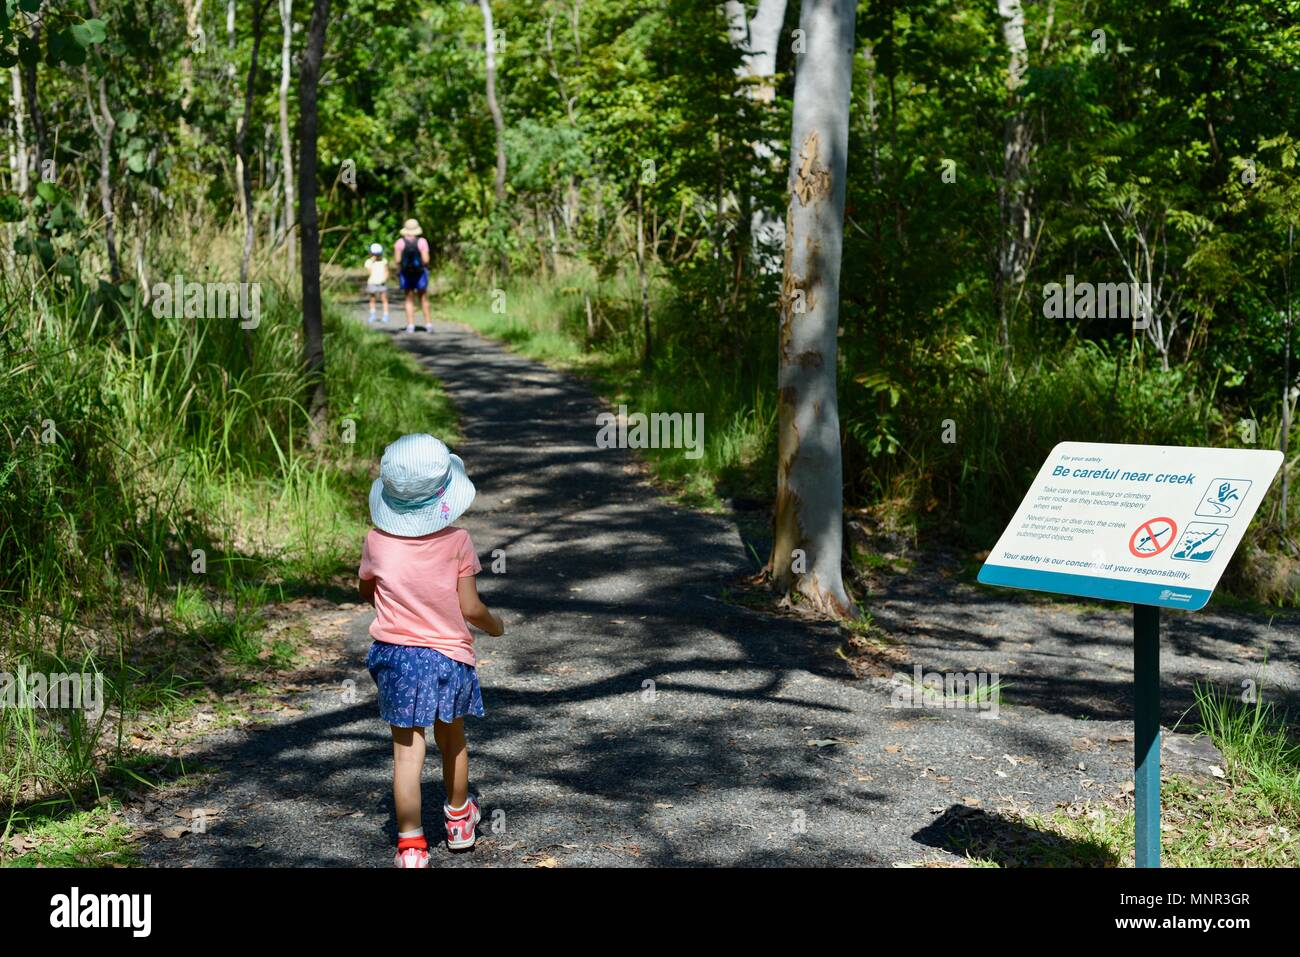 A mother and children walk along a path in a forest, Jourama Falls, Bruce Hwy, Yuruga QLD, Australia - Stock Image